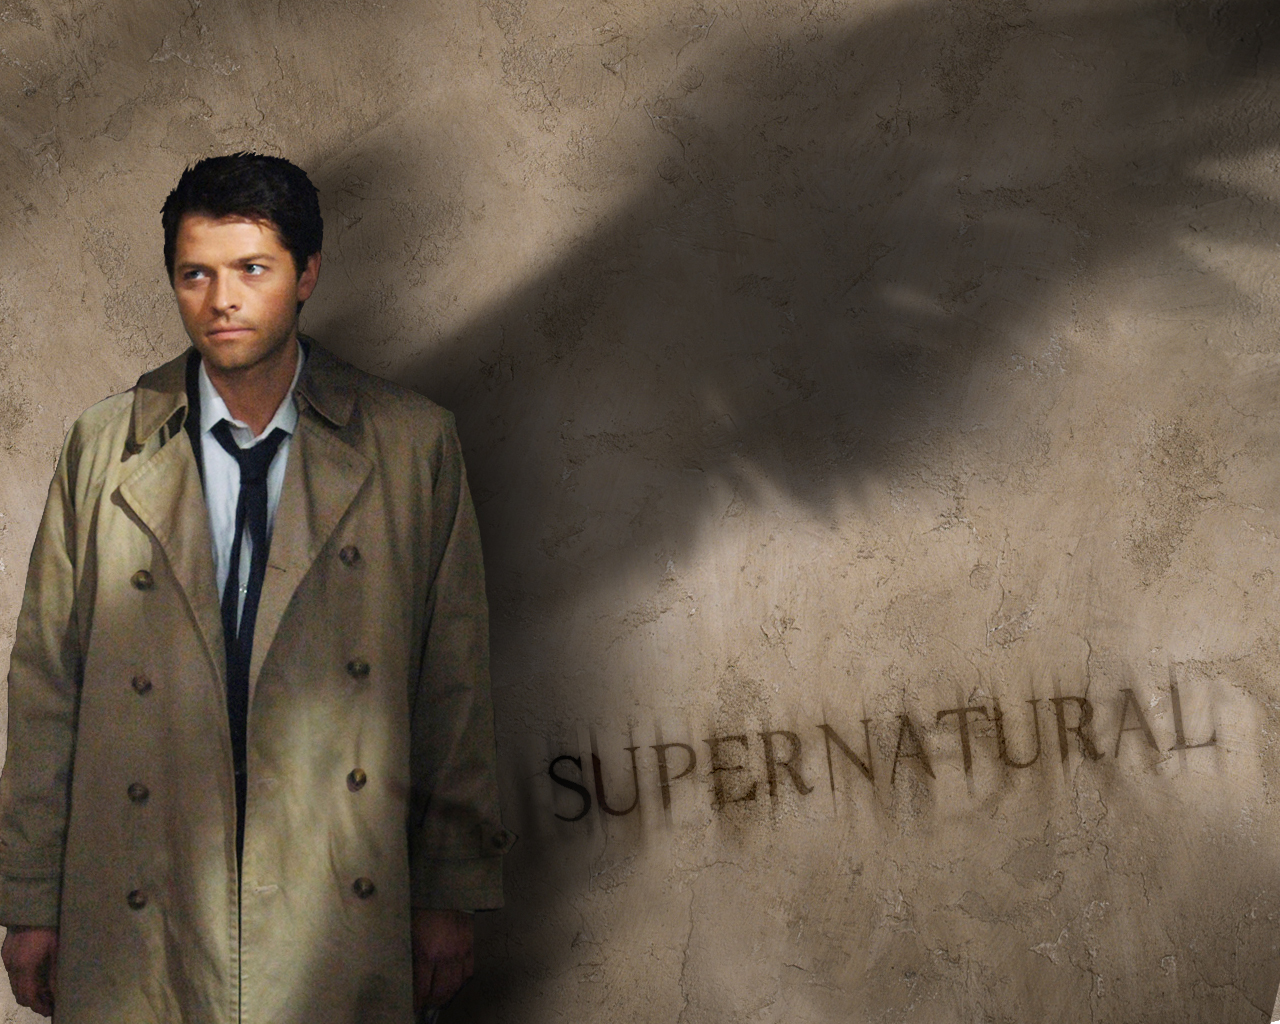 angels Supernatural Castiel Misha HD Wallpaper